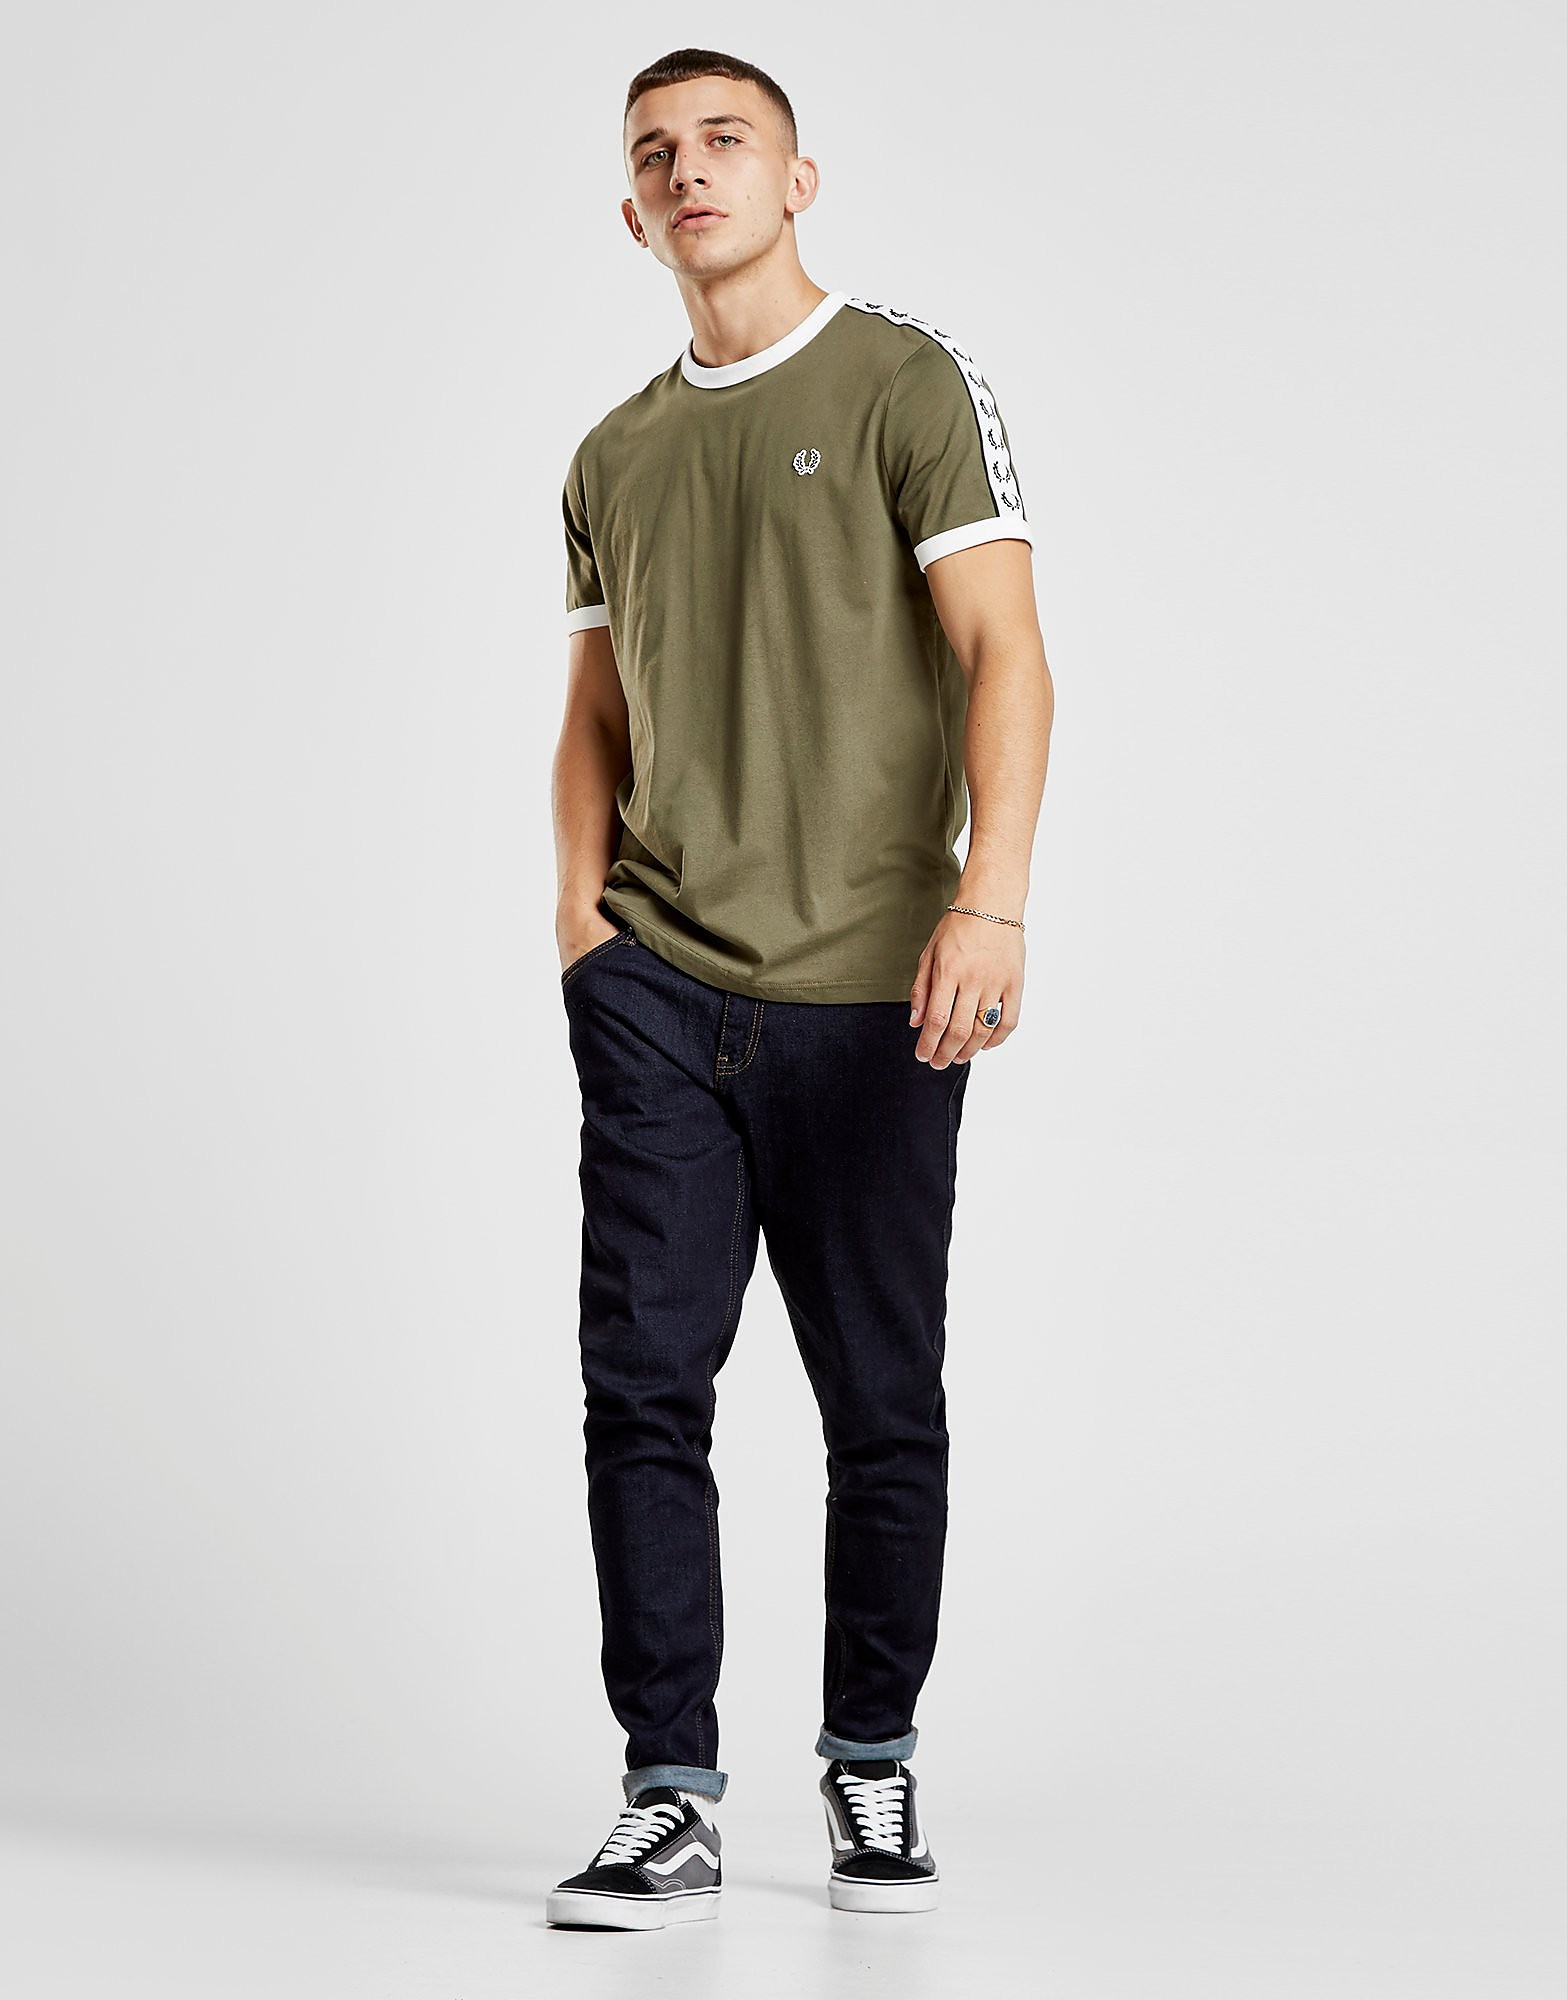 Fred Perry SA Tape T-Shirt